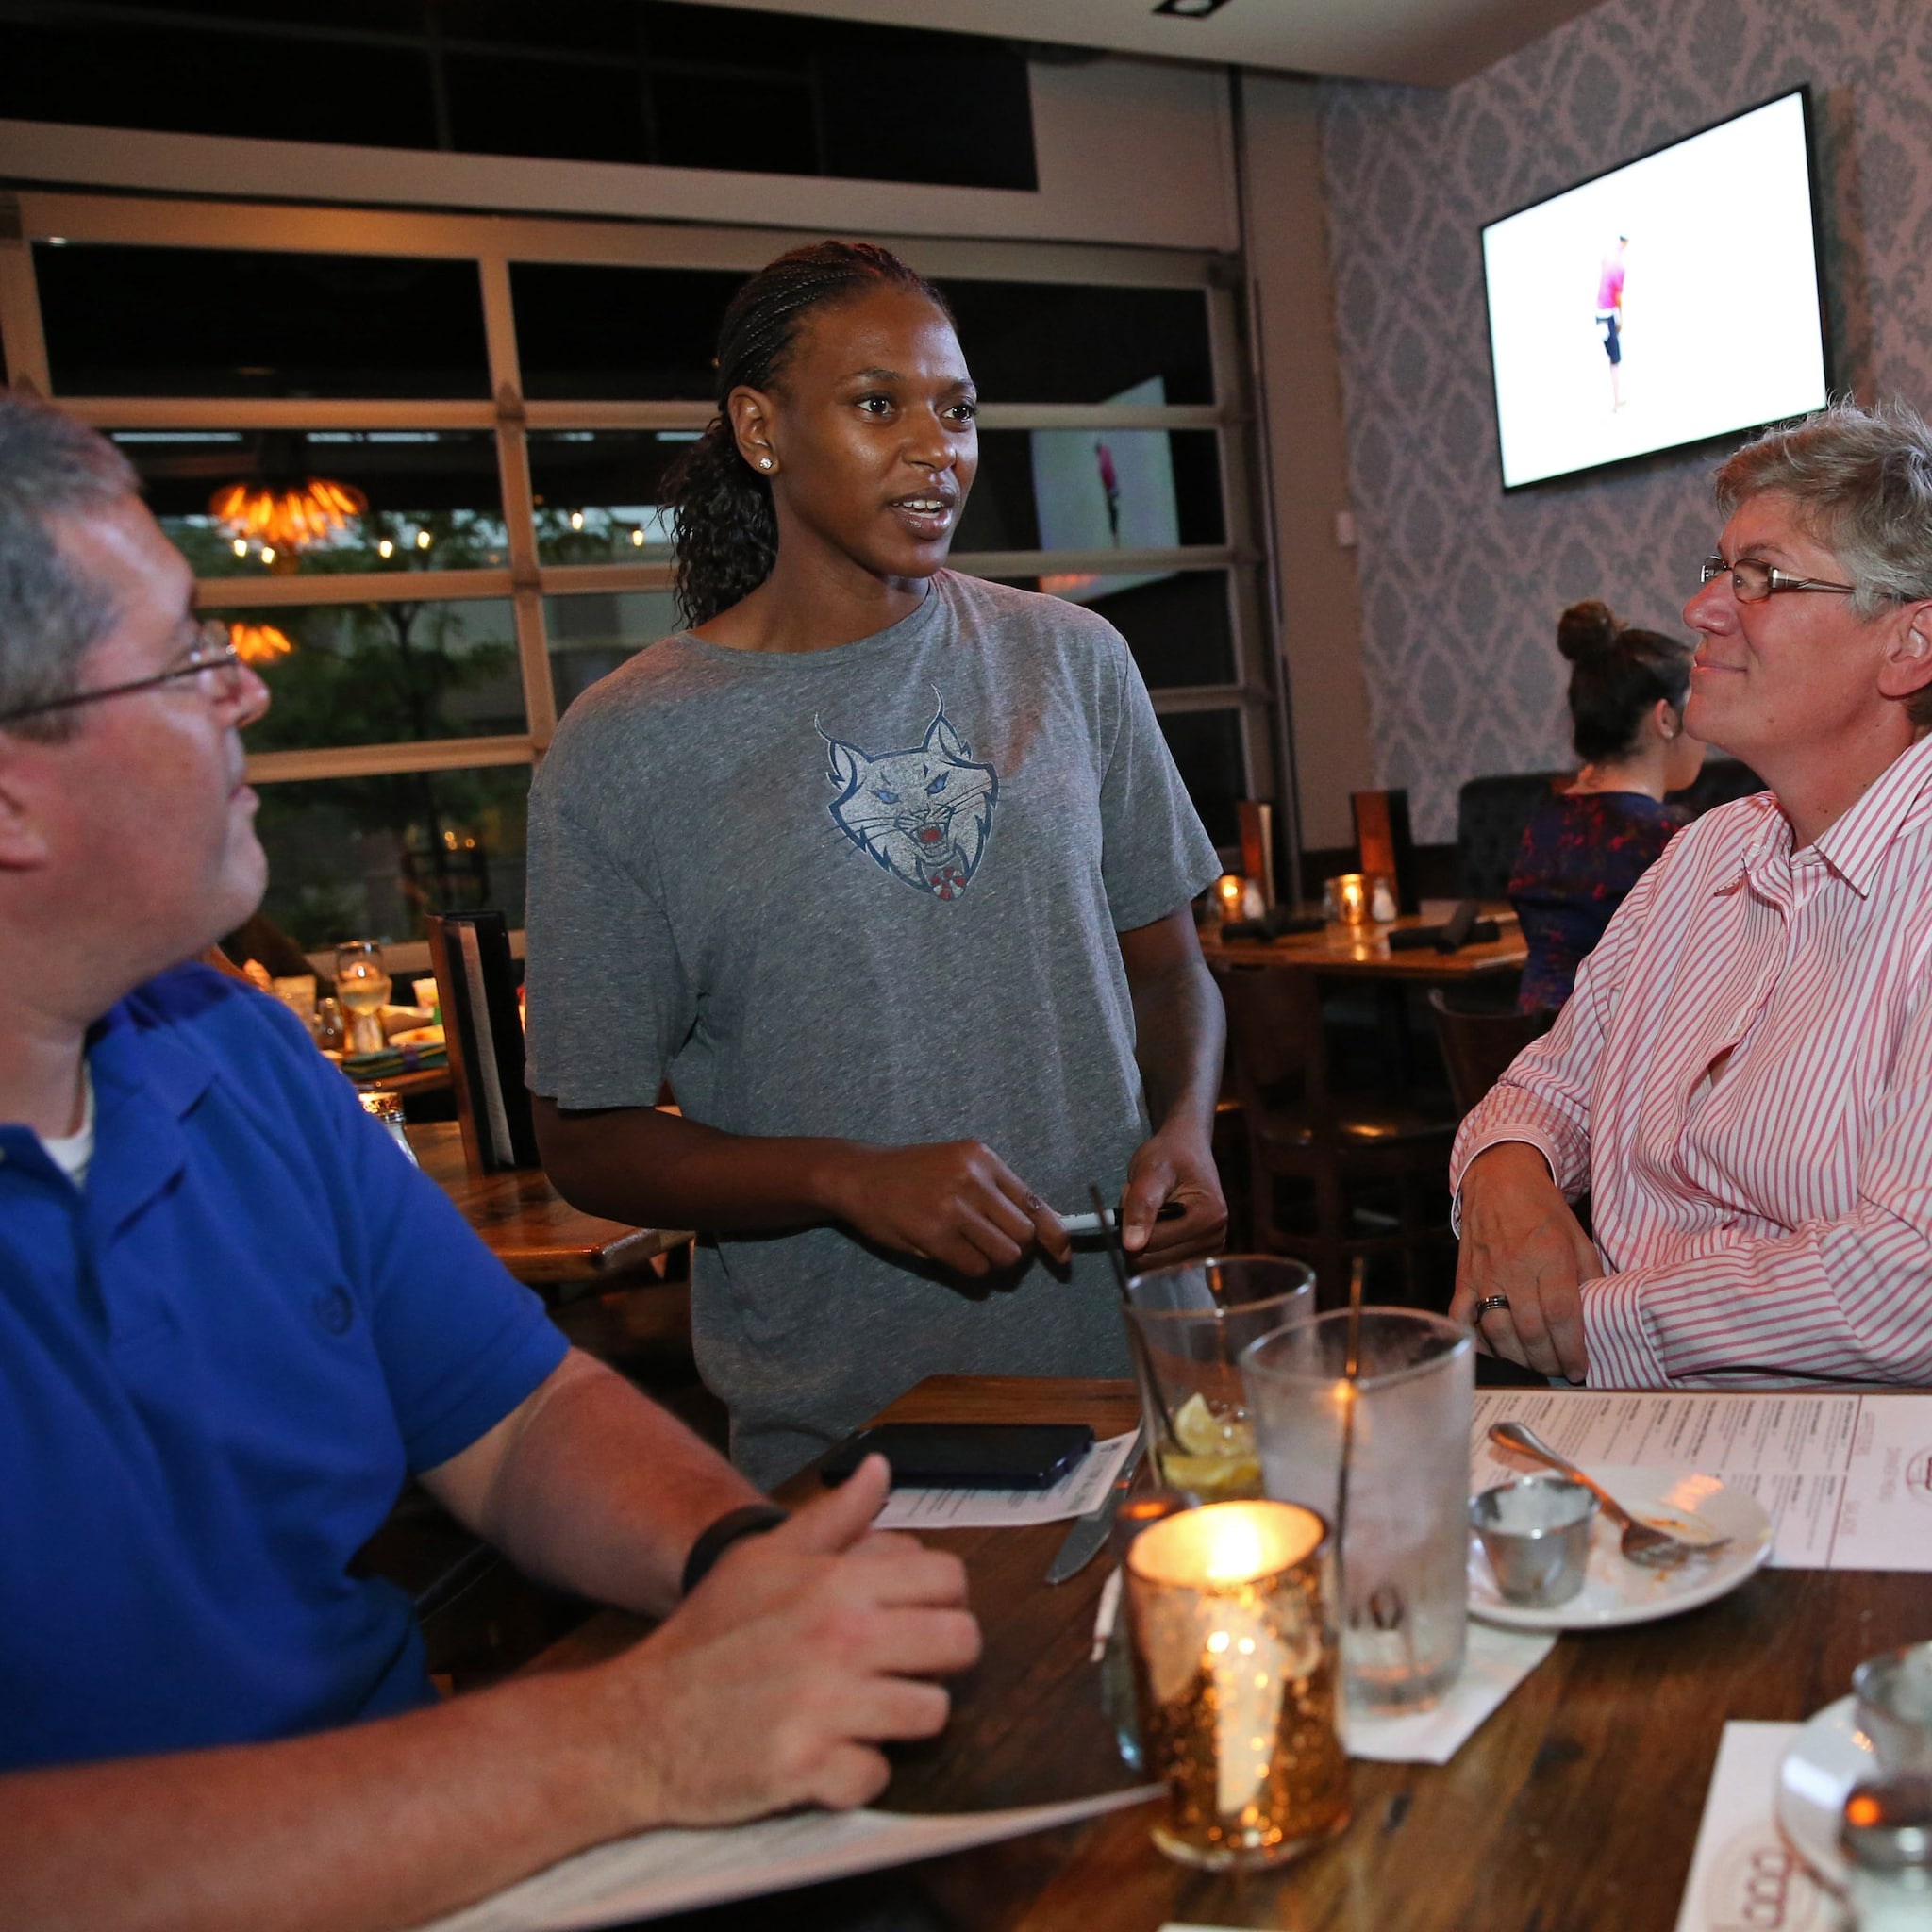 MINNEAPOLIS, MN - JUNE 3:  Asjha Jones #15 of the Minnesota Lynx takes food orders during the Tip-A-Lynx fundraiser to benefit the Minnesota Lynx Fastbreak Foundation on June 3, 2015 at the Loop West End Bar & Restaurant in Minneapolis, Minnesota.  NOTE TO USER: User expressly acknowledges and agrees that, by downloading and or using this Photograph, user is consenting to the terms and conditions of the Getty Images License Agreement. Mandatory Copyright Notice: Copyright 2015 NBAE (Photo by David Sherman/NBAE via Getty Images)